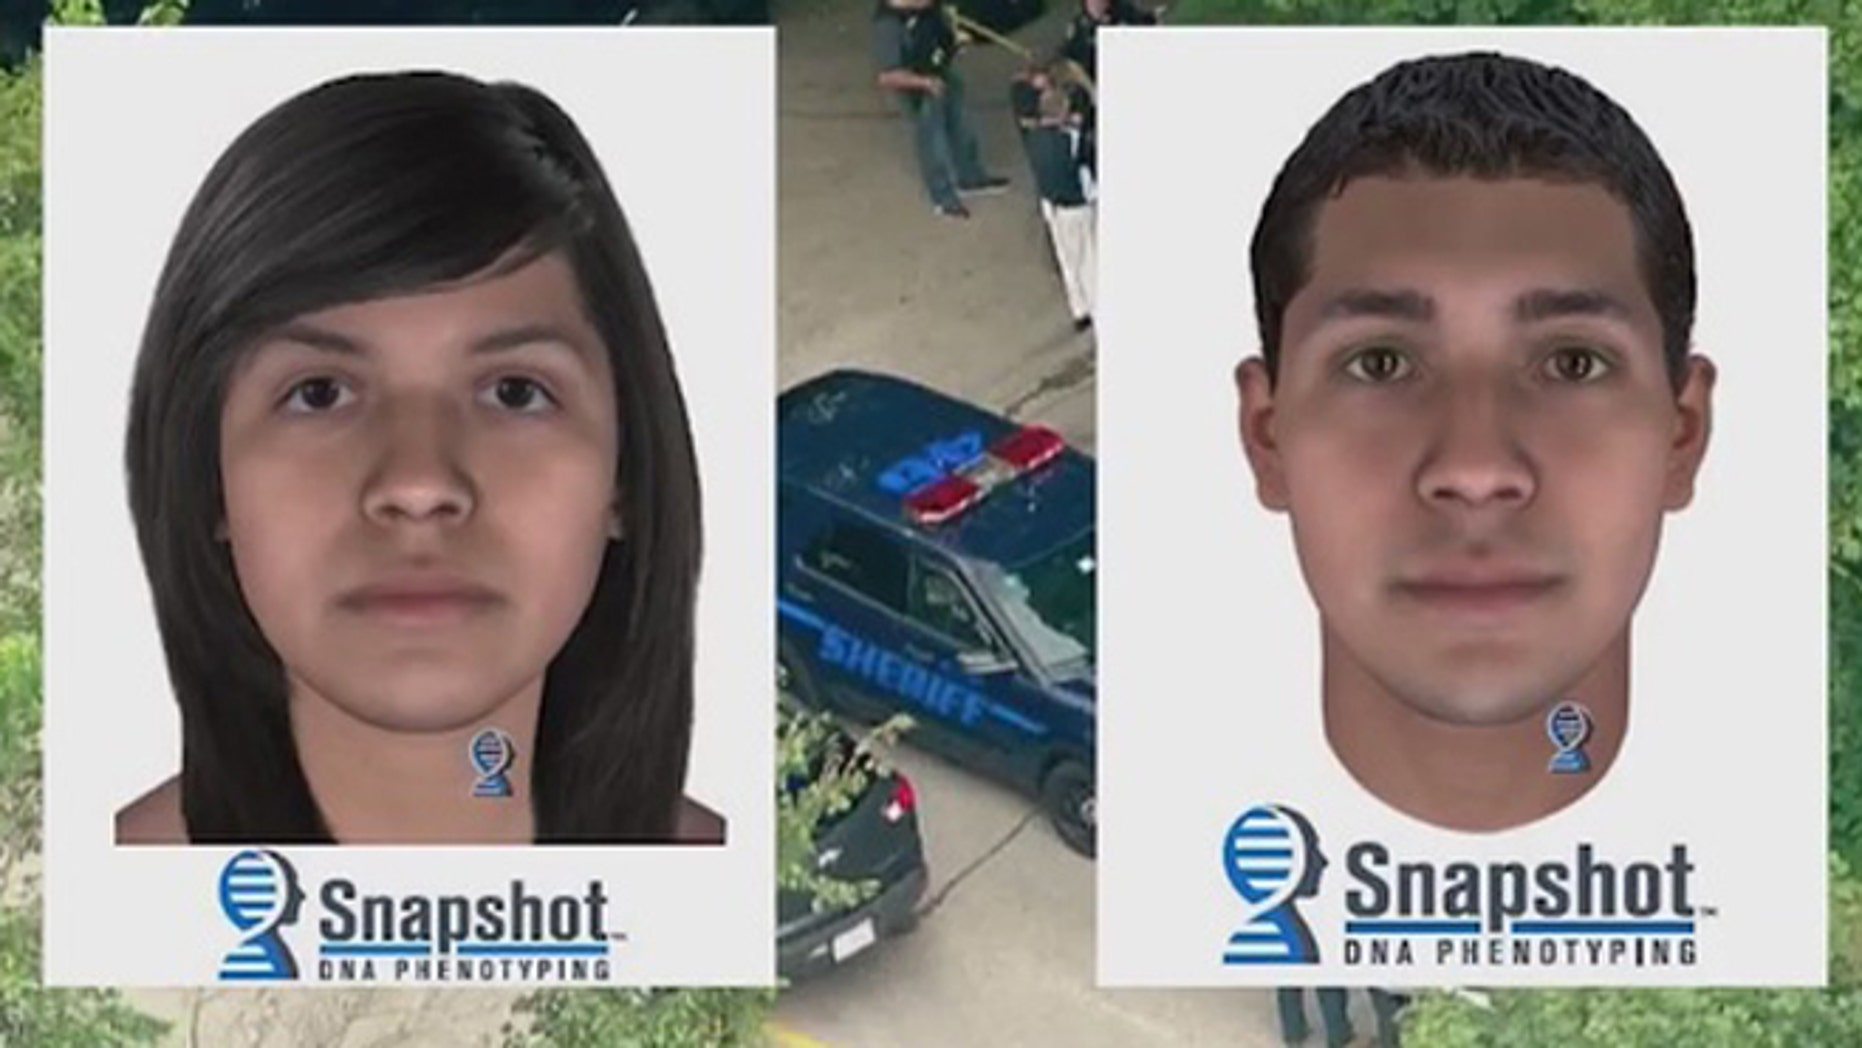 """Investigators say these composites may resemble the parents of a dead infant known as """"Baby Hope."""" (Fox 32 Chicago)"""